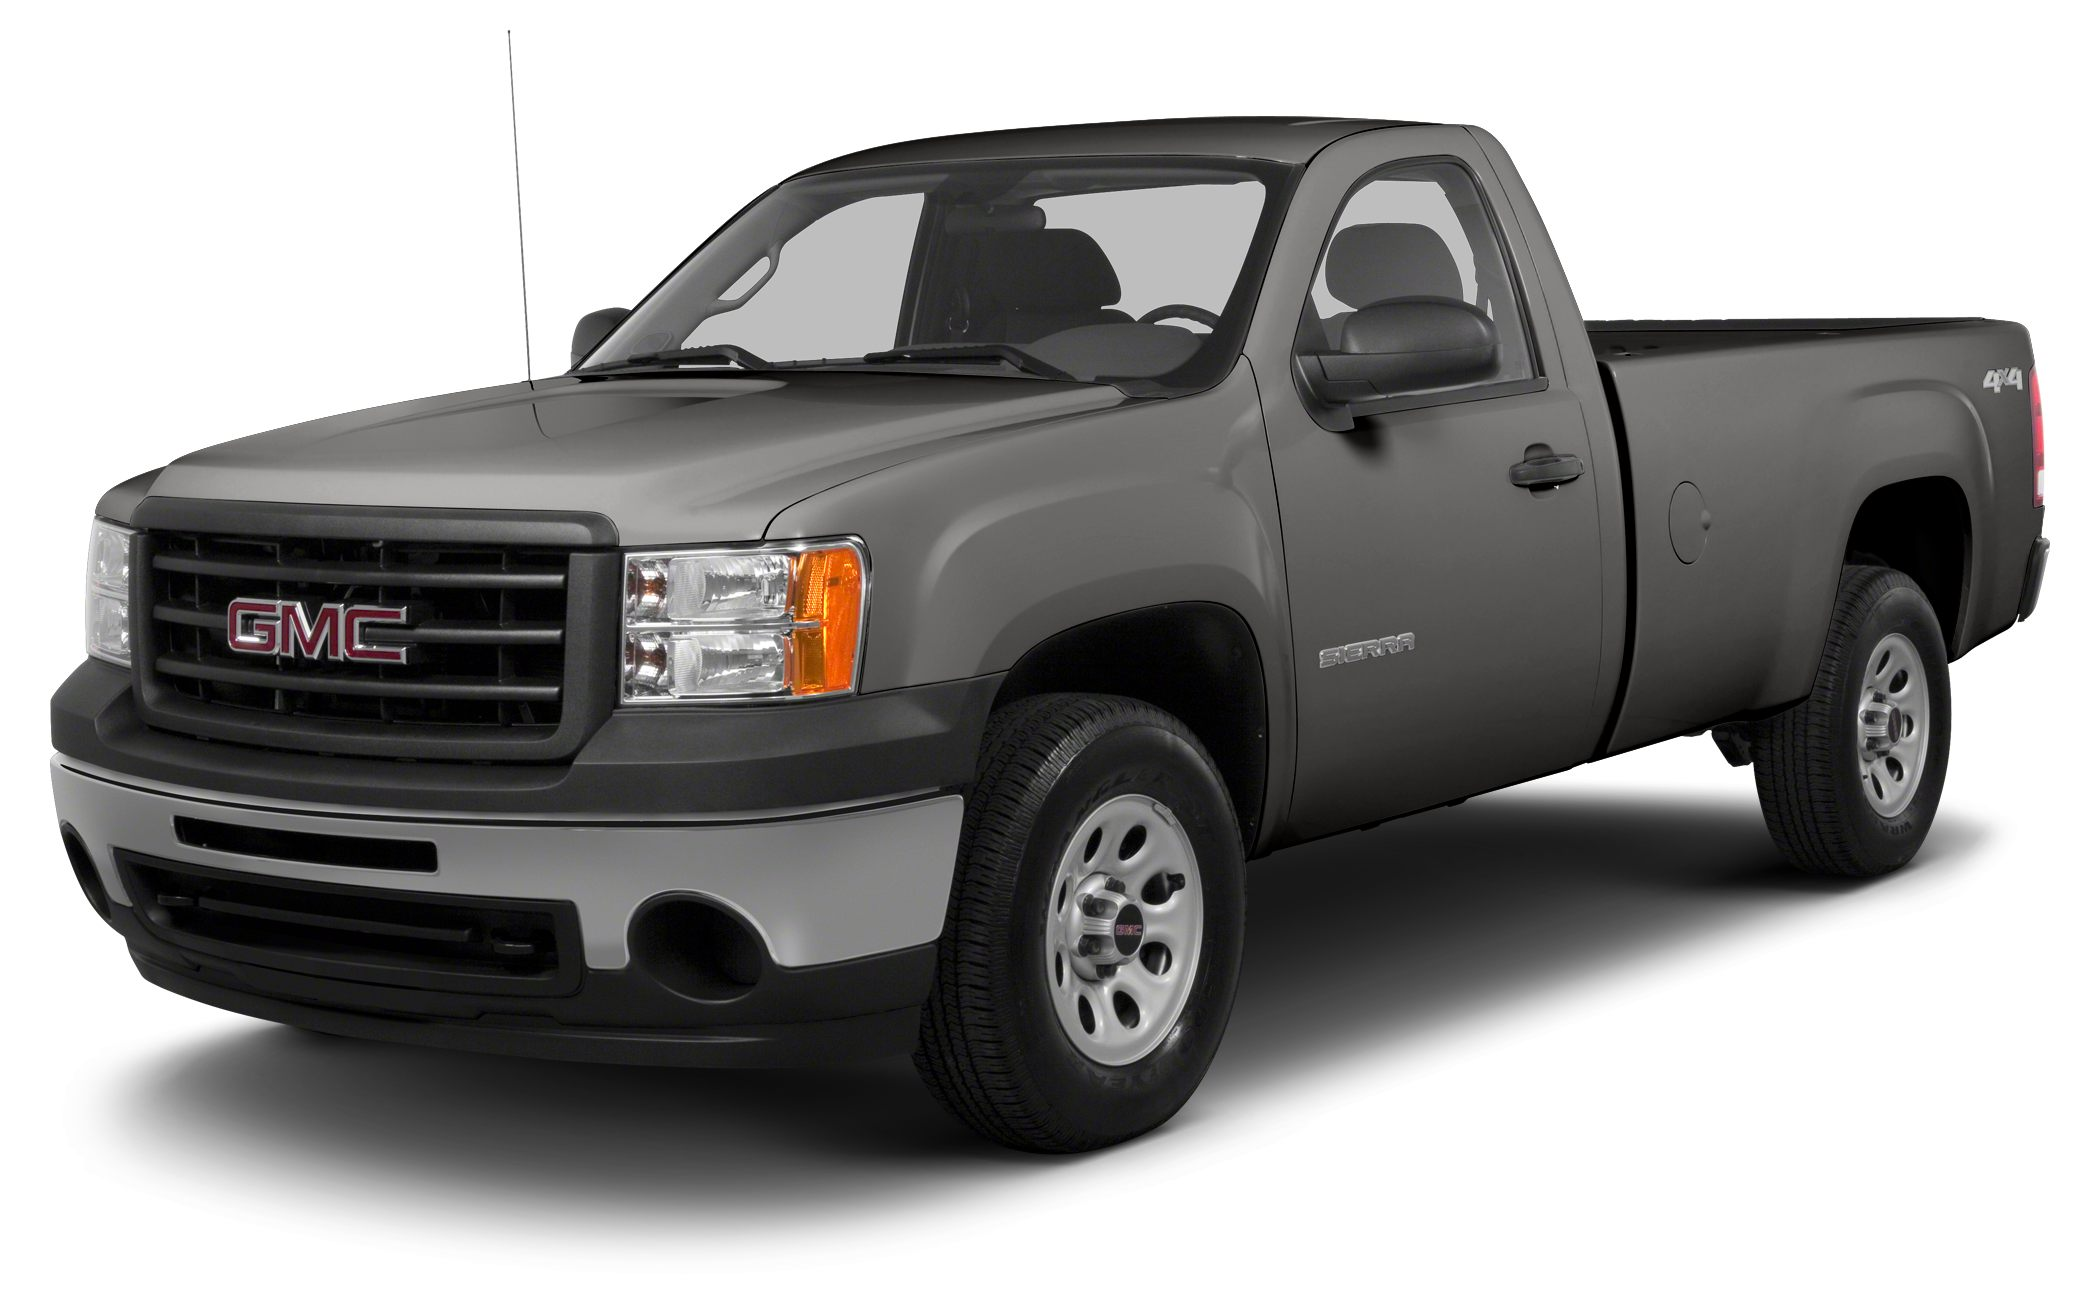 2013 GMC Sierra 1500 SLE KEY FEATURES INCLUDE 4x4 OPTION PACKAGES TRAILERING PACKAGE